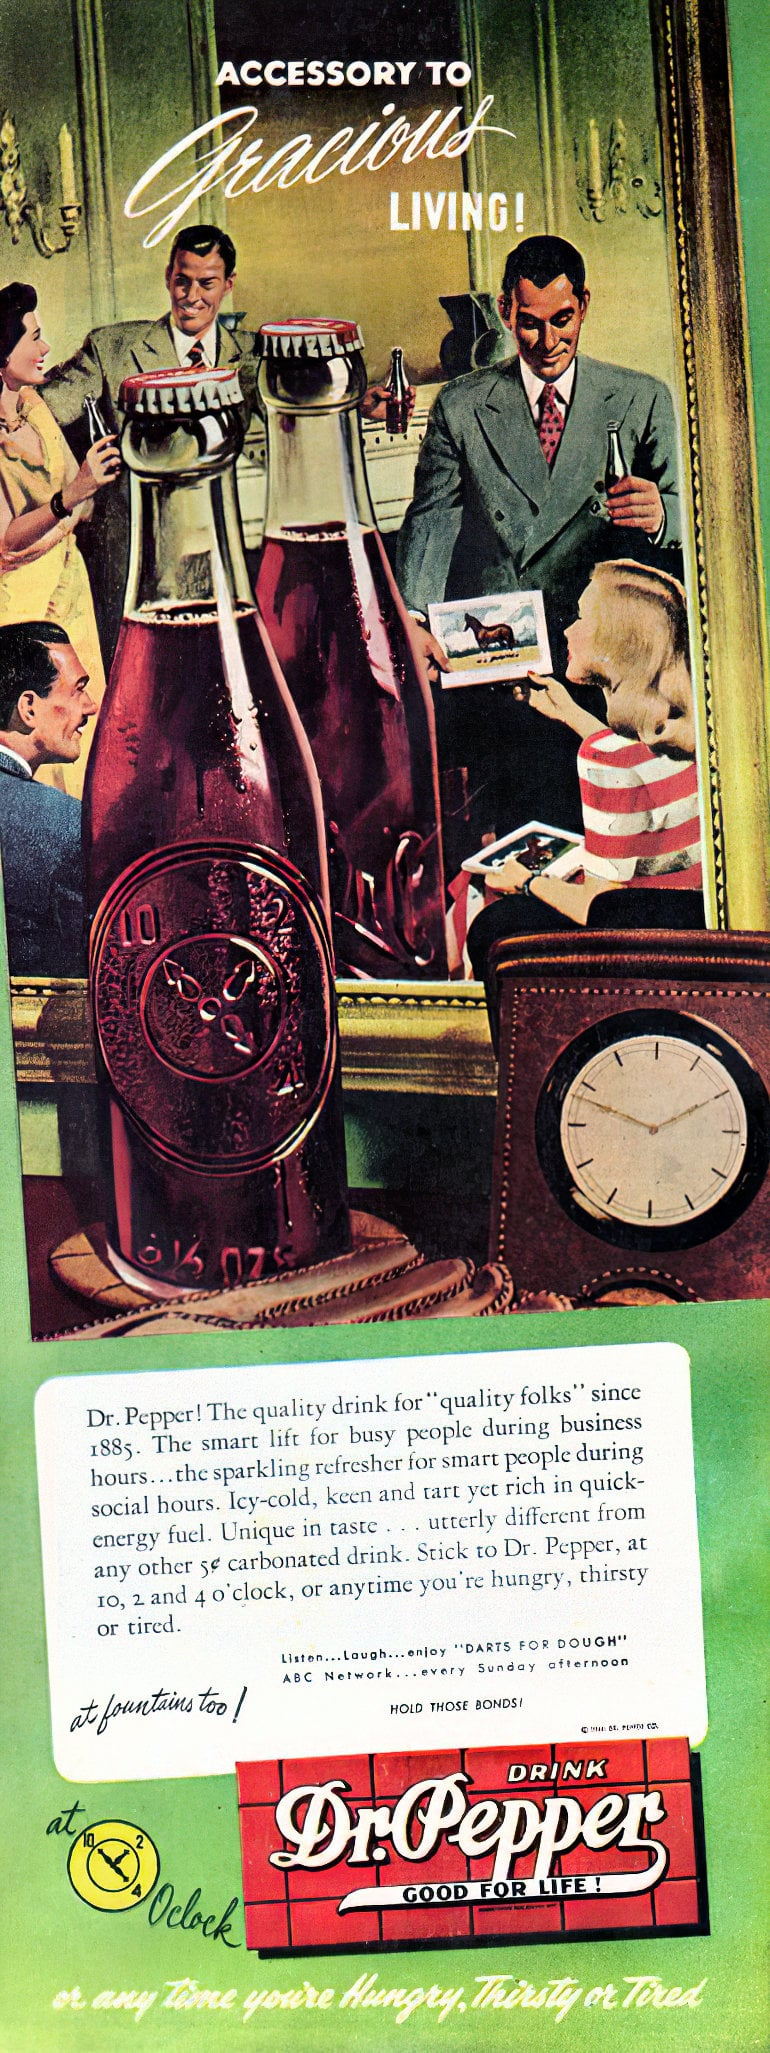 Dr Pepper for gracious living (1946)